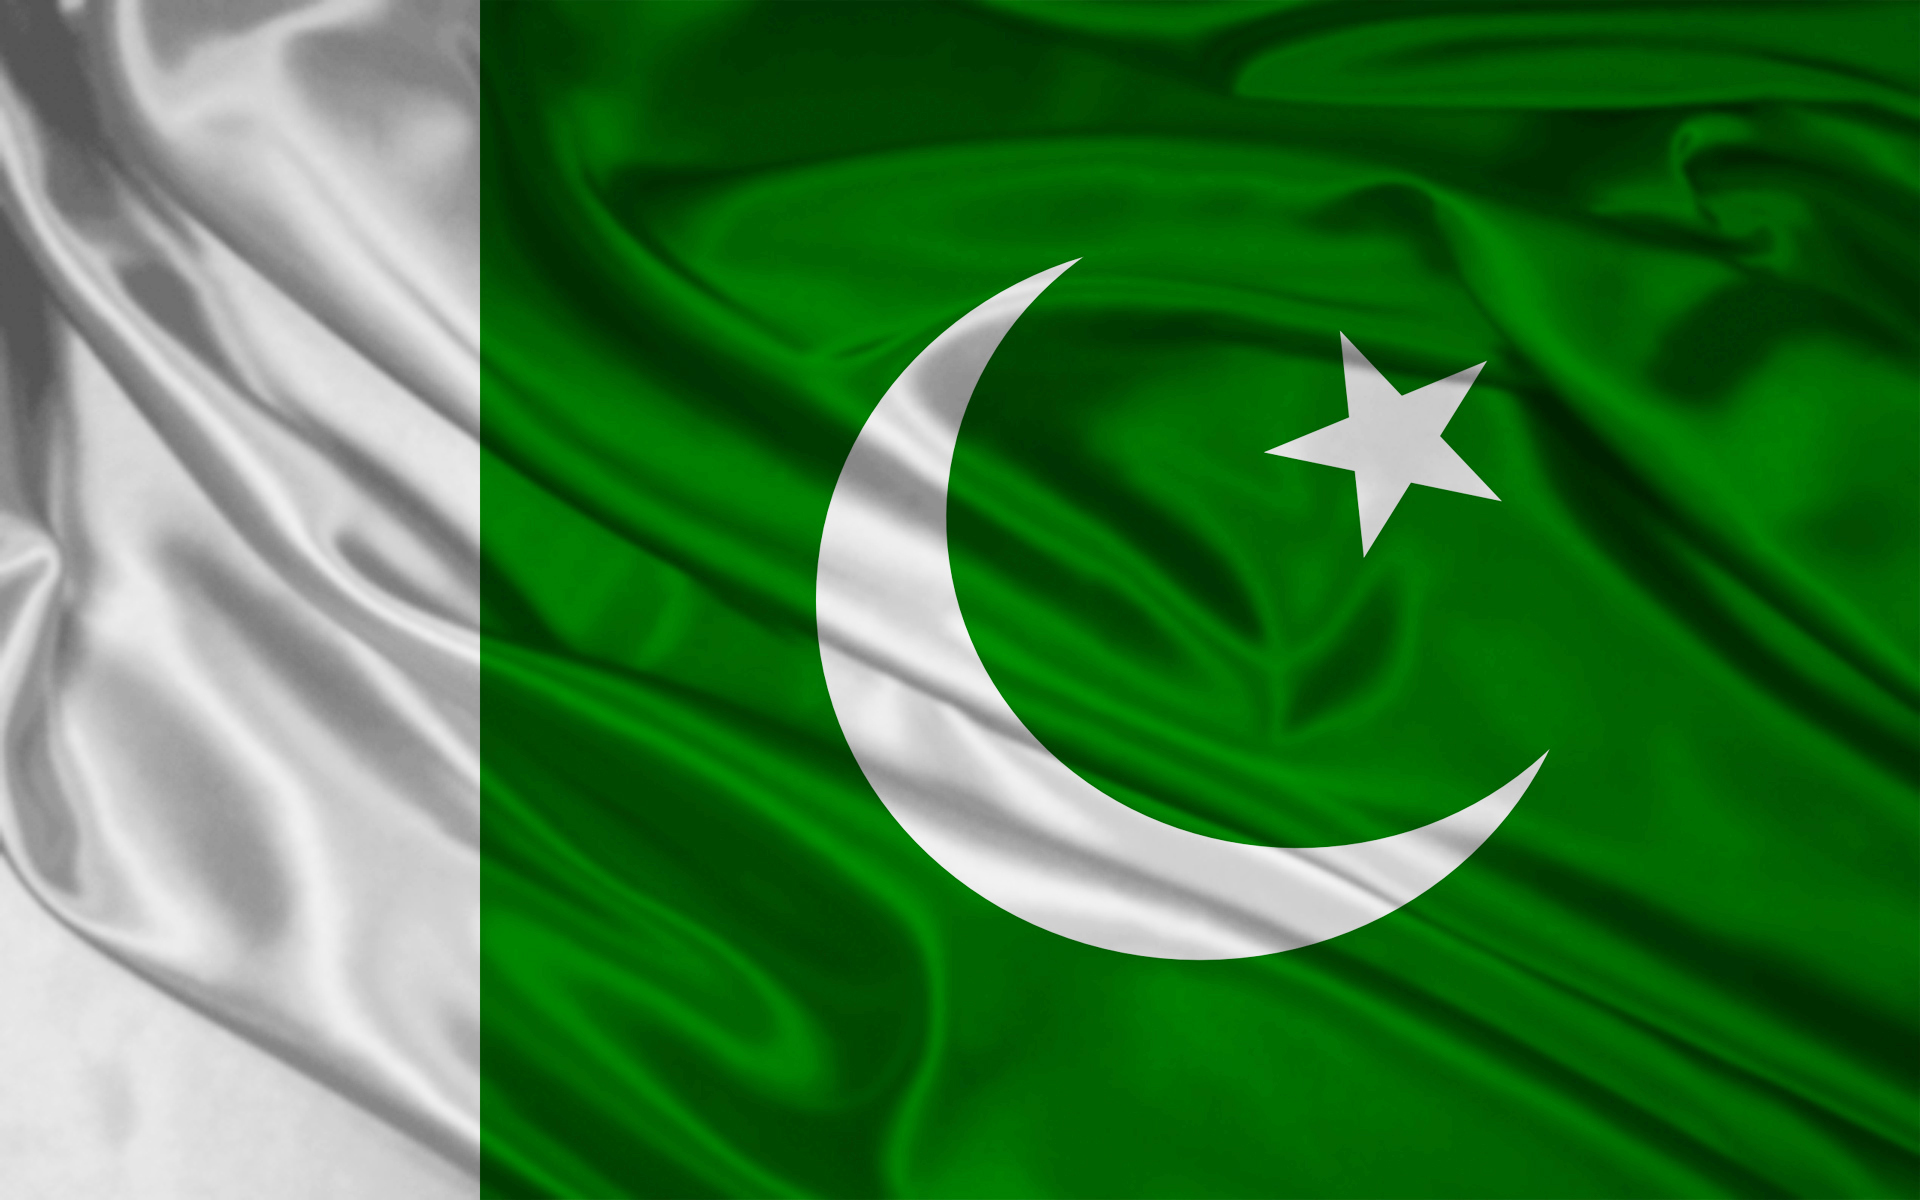 1920x1200 Download Pakistan Wallpapers, With Complete Pakistani Culture and ...